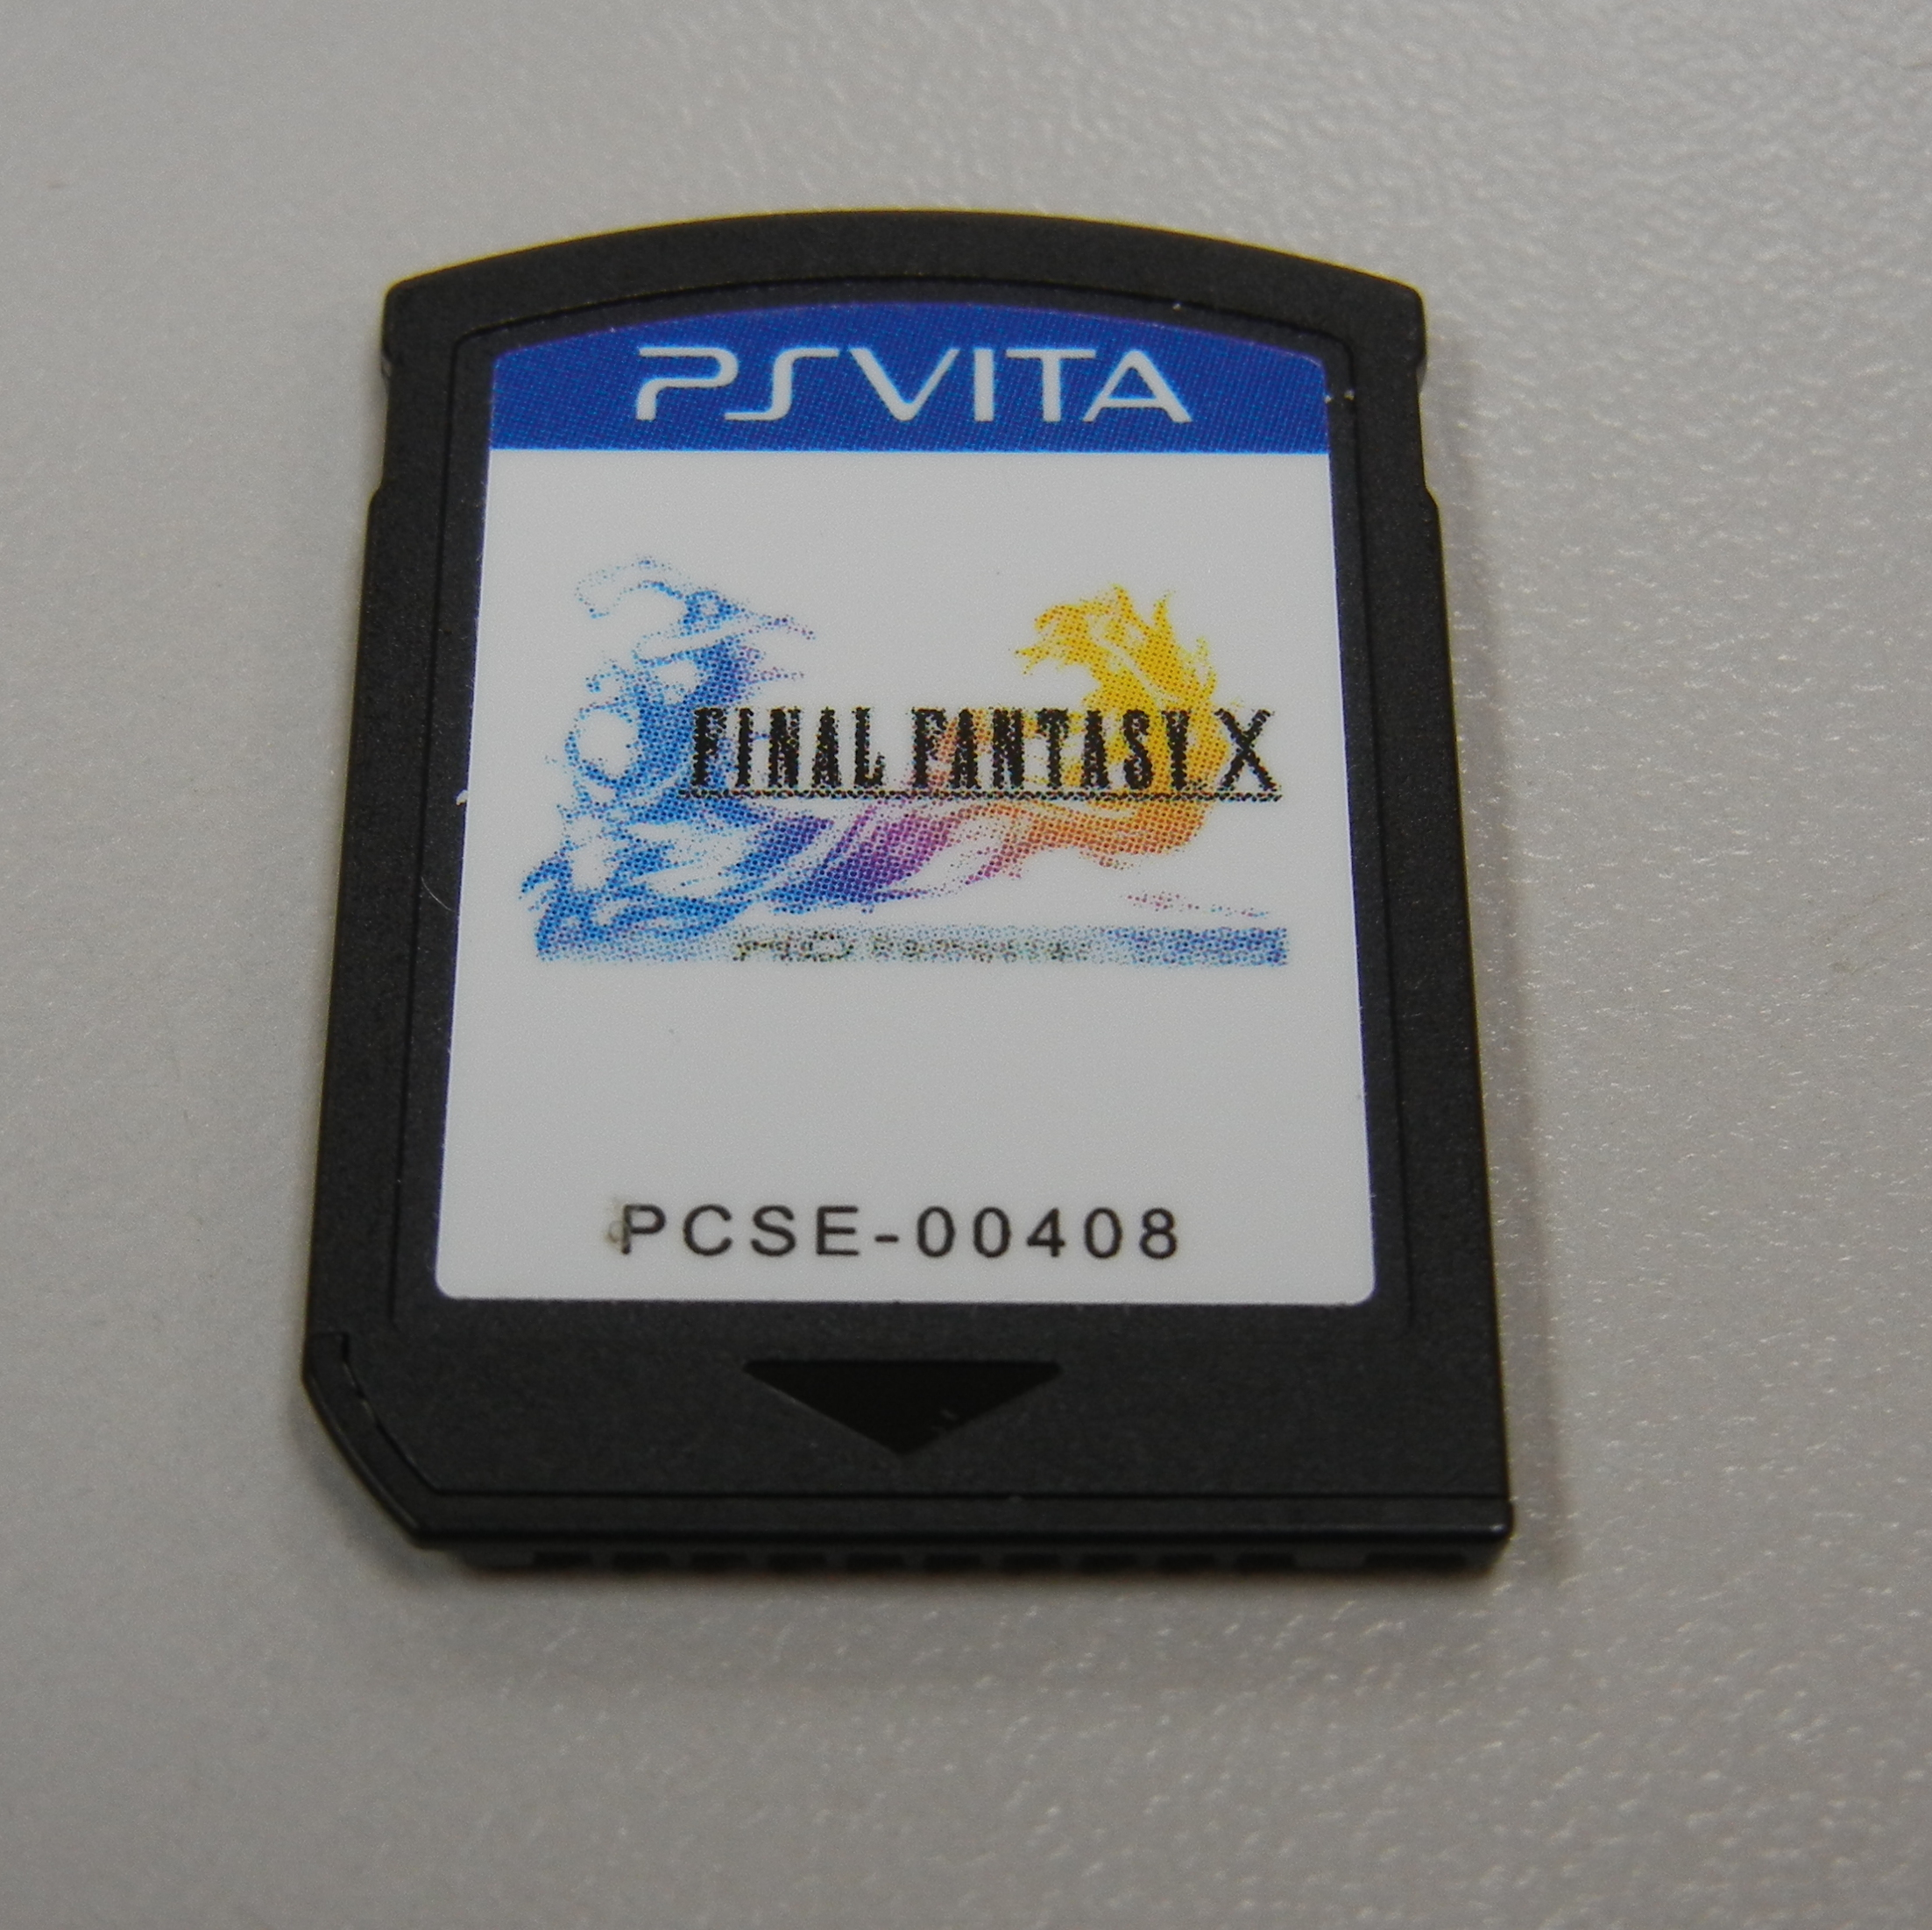 FINAL FANTASY X PS VITA GAME